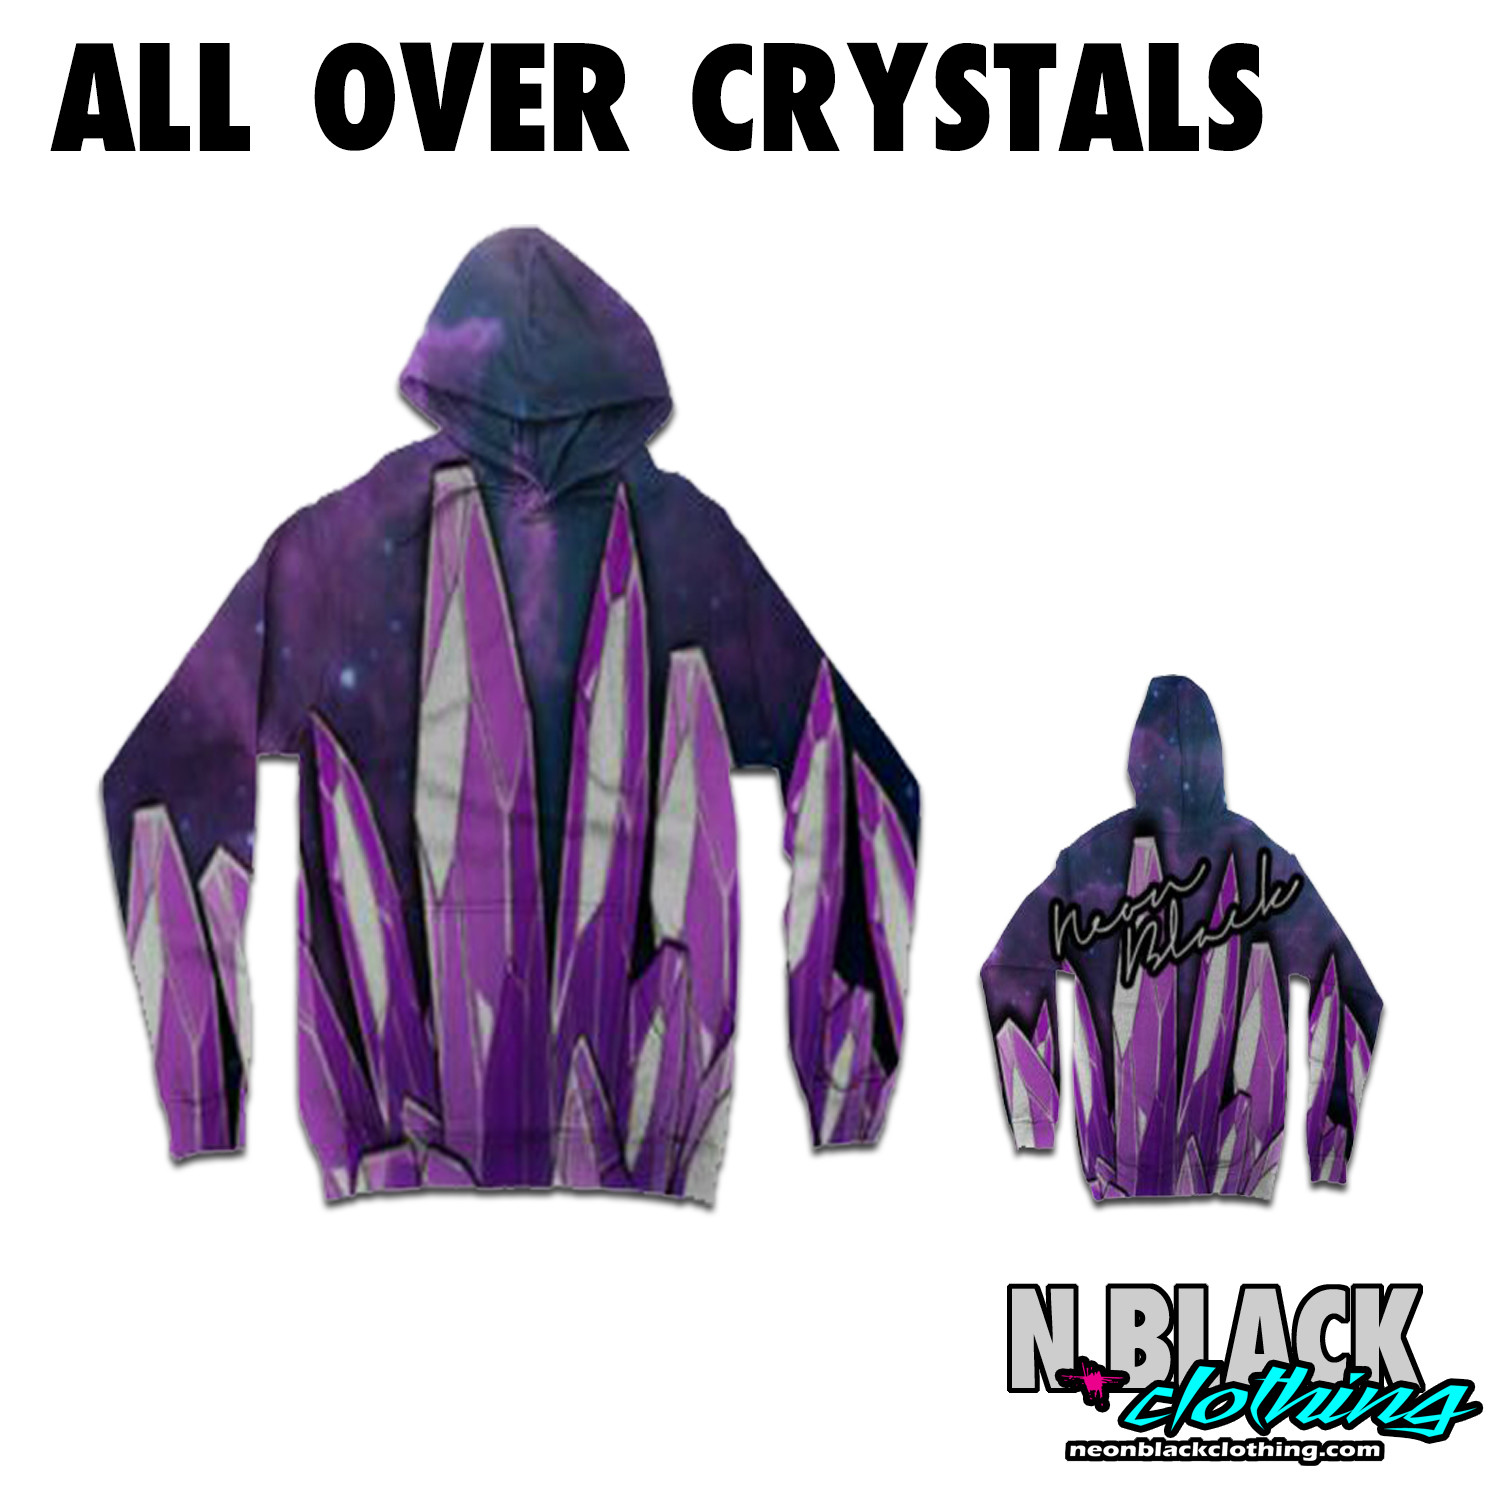 All Over Crystals